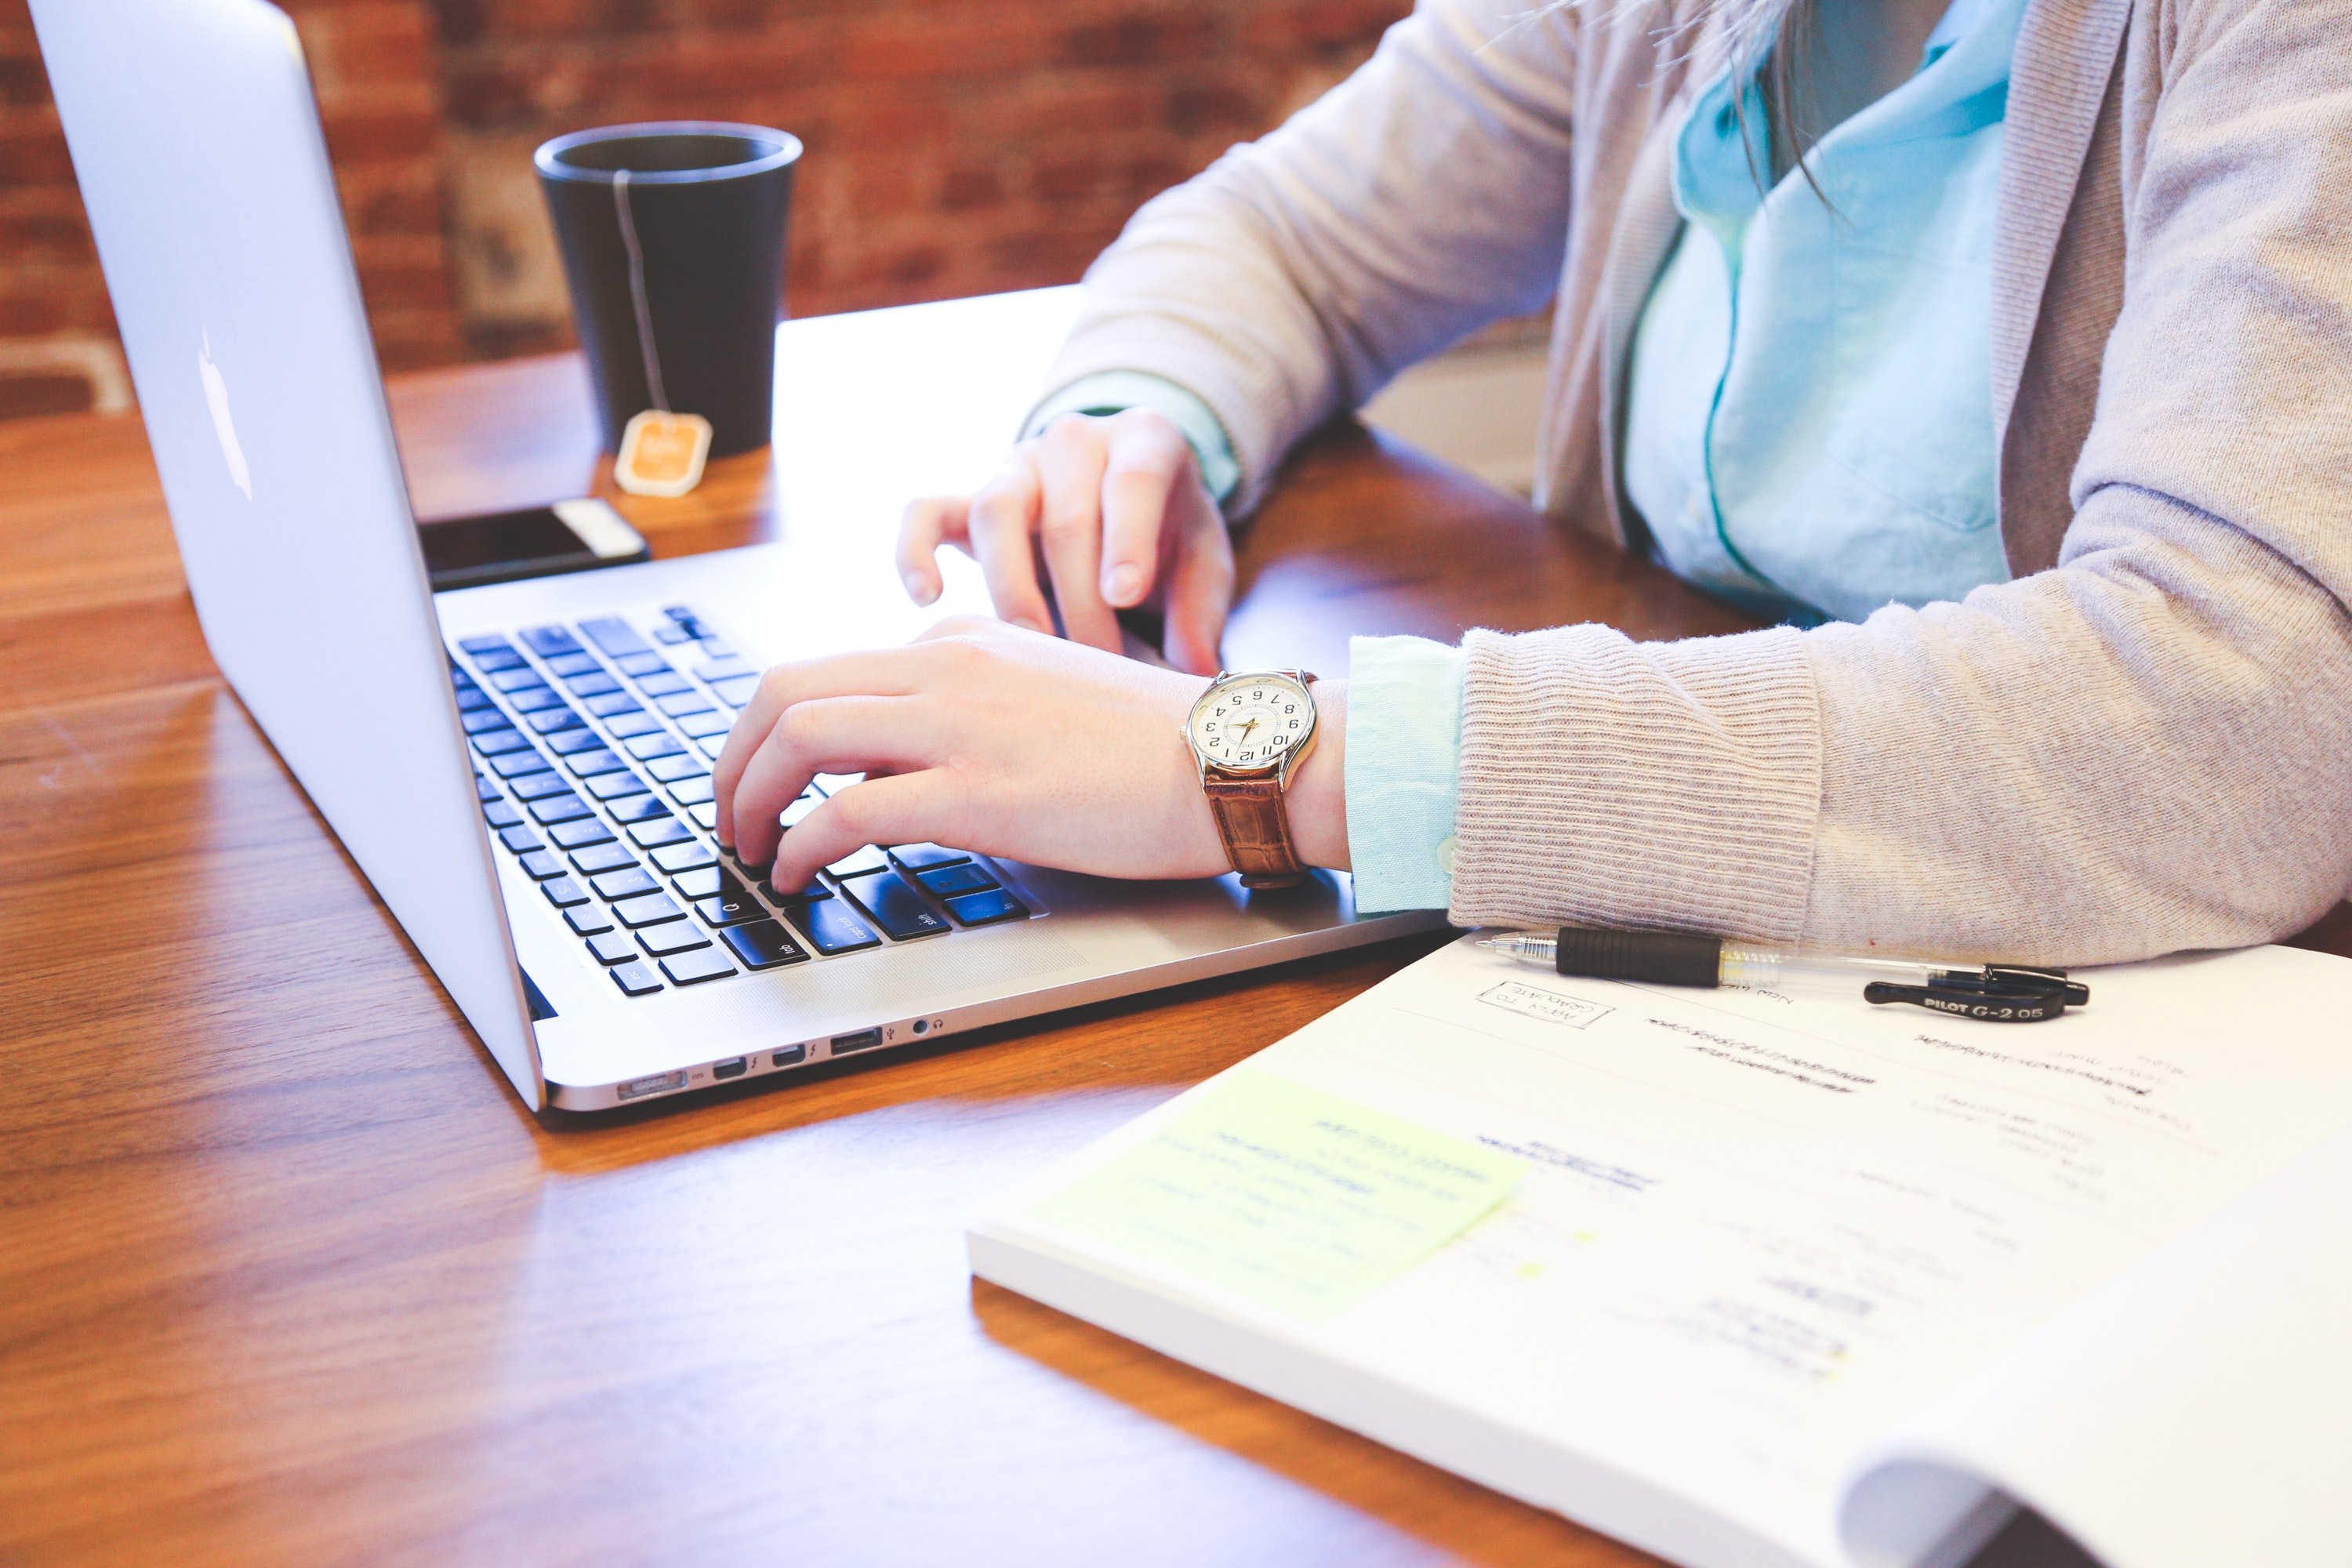 Engage your learners remotely with e-Learning technologies amid COVID19